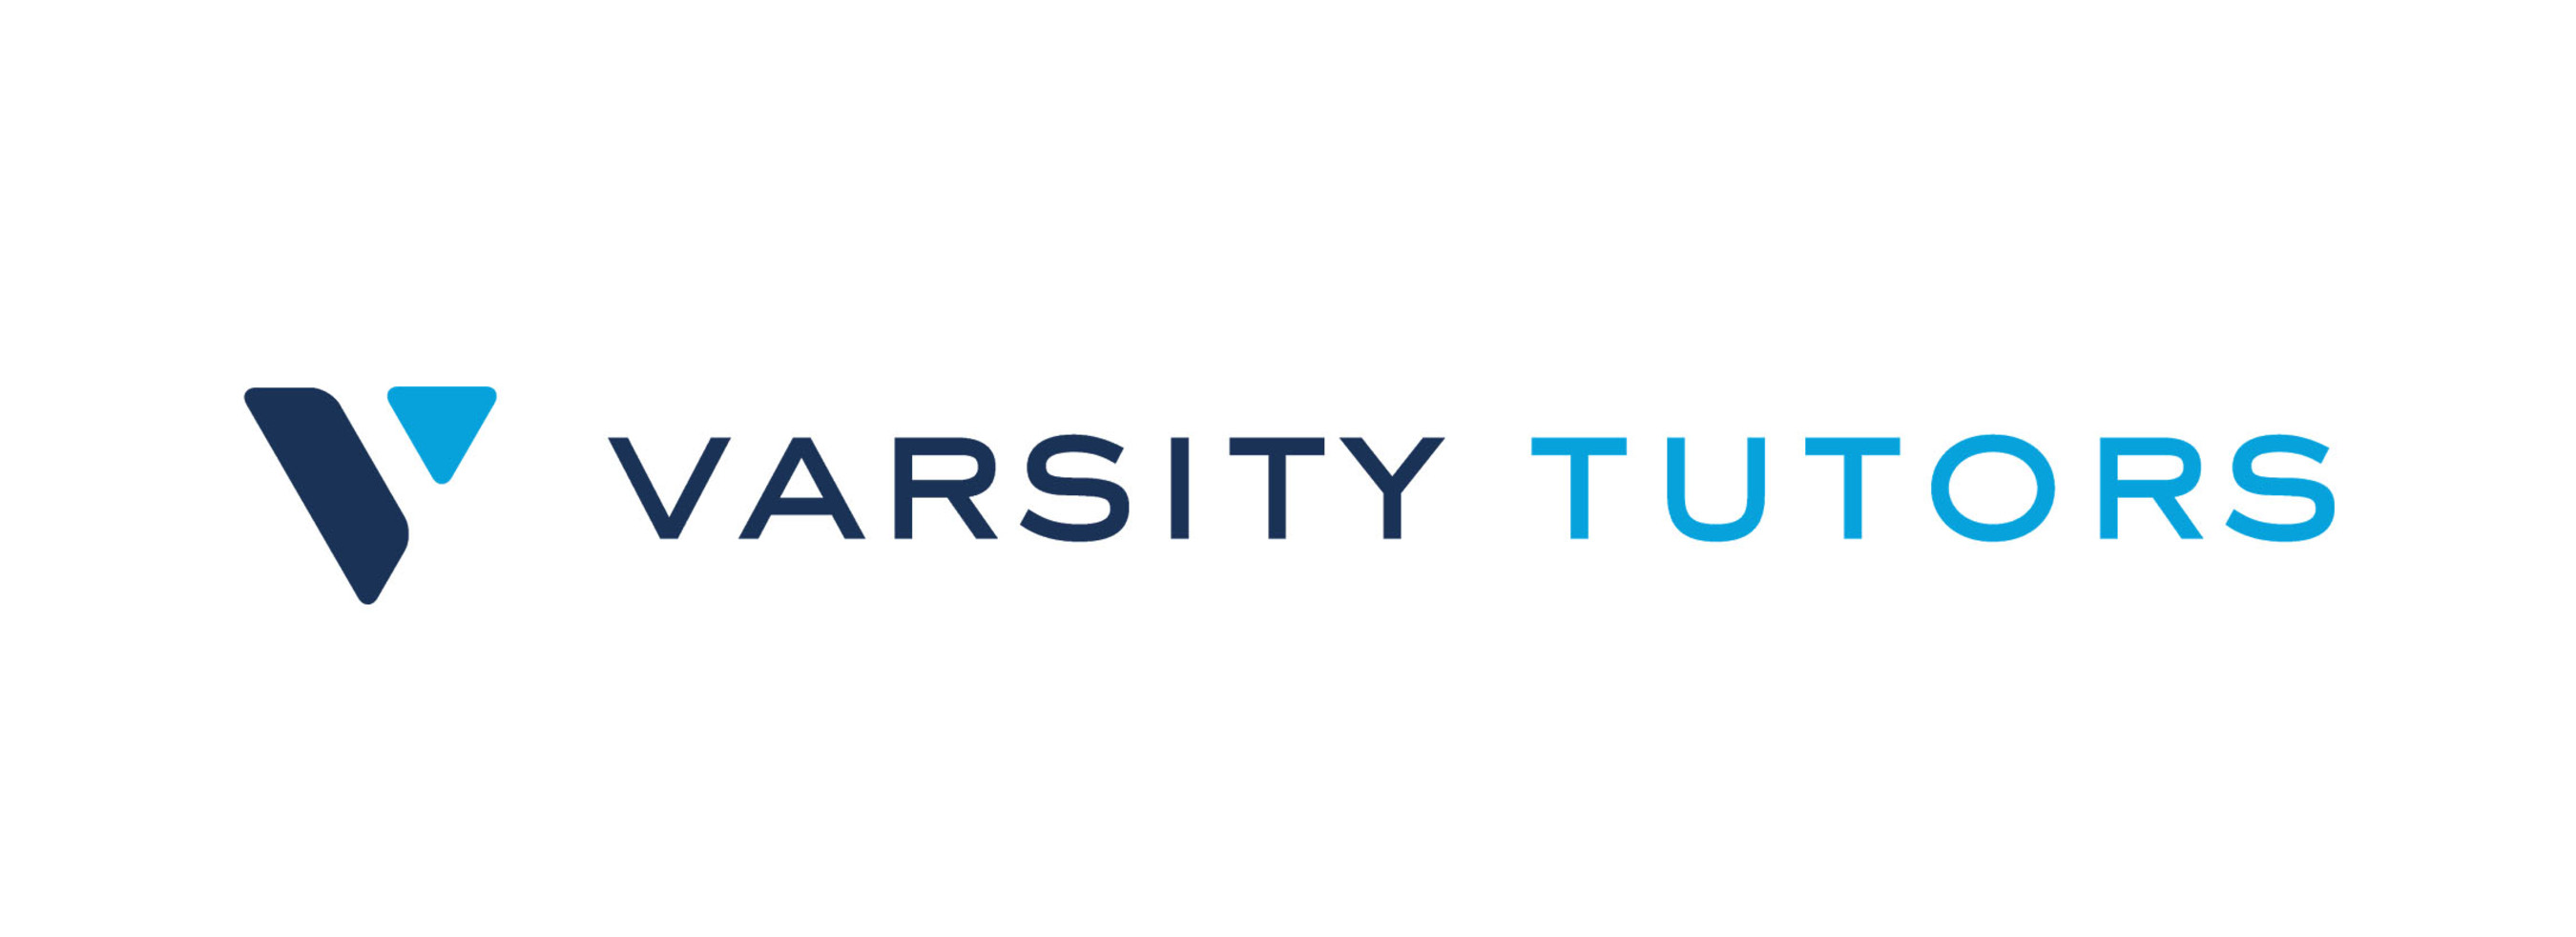 Varsity Tutors Secures $57 Million To Build World's Largest Live Learning Platform From Technology